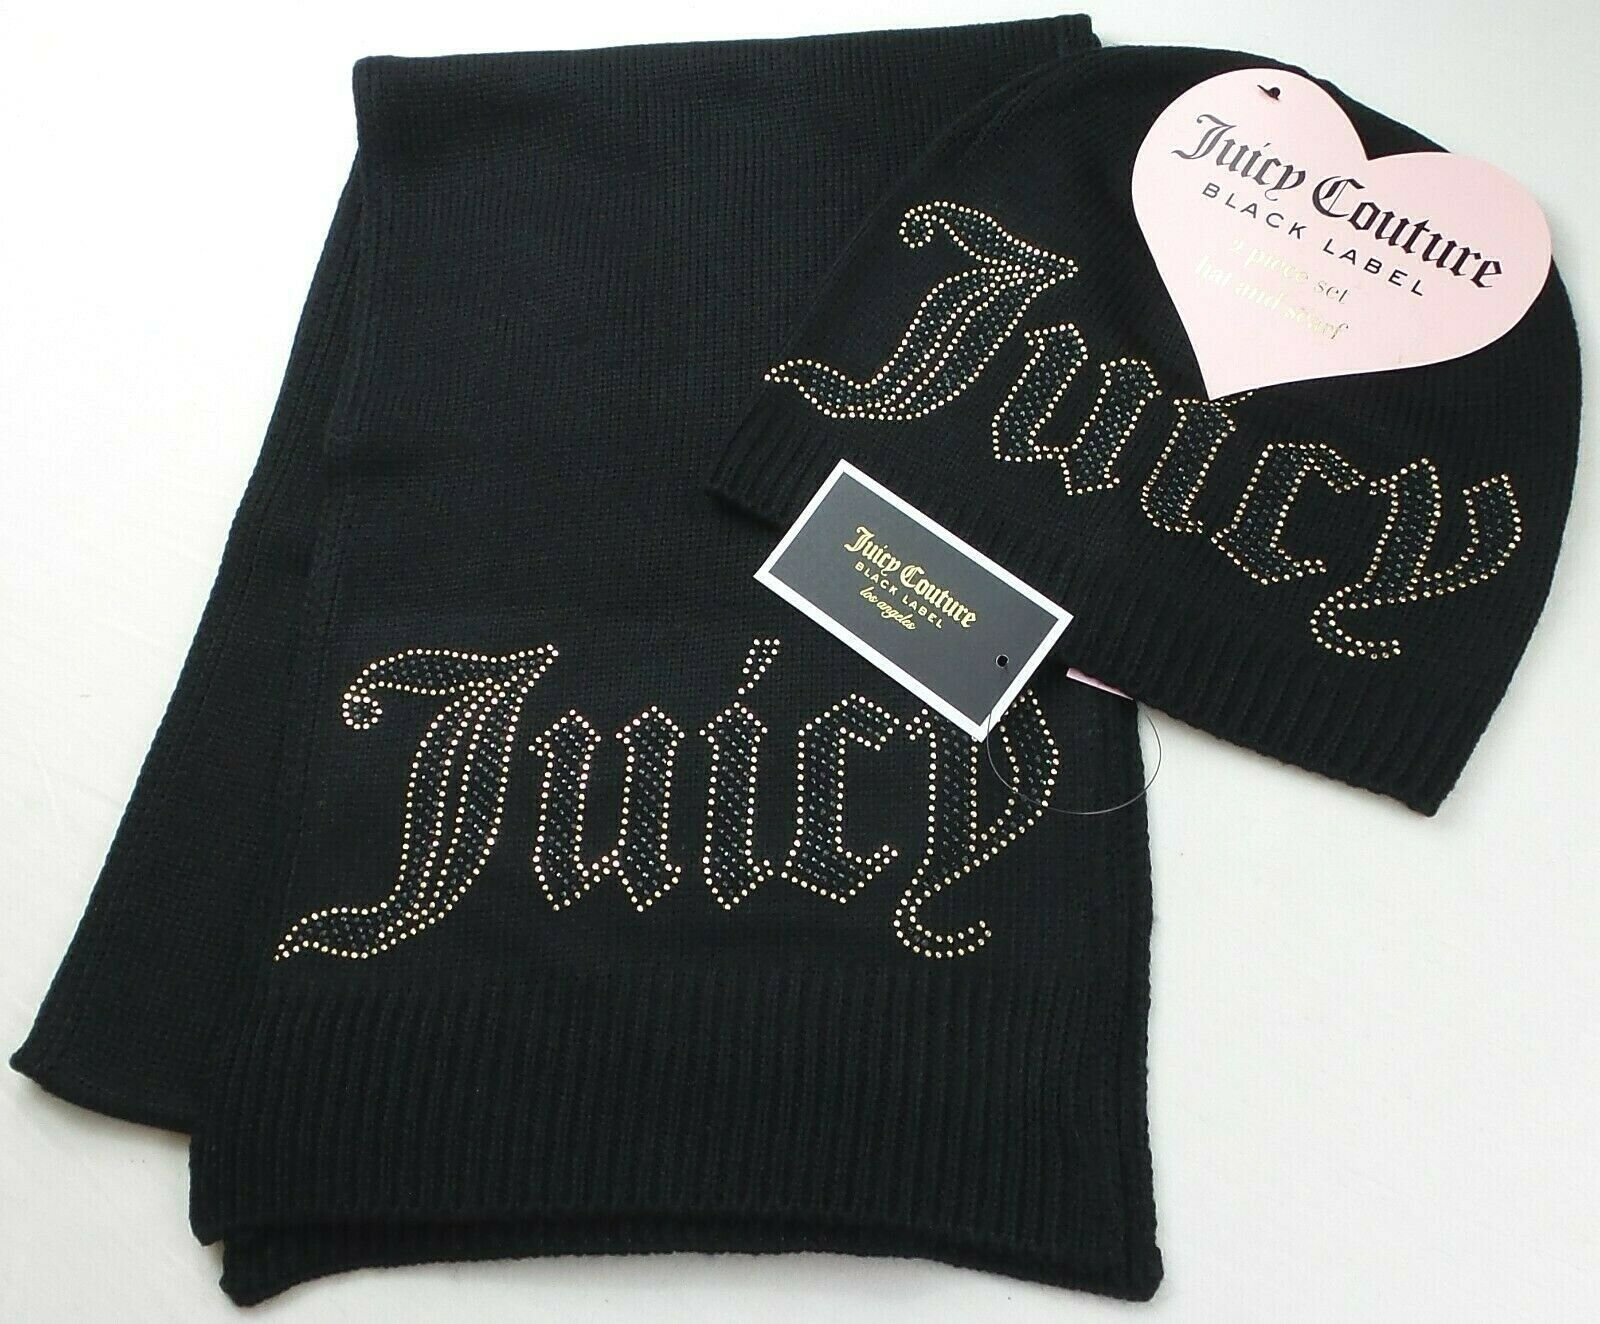 Primary image for Juicy Couture Black Label Women's Beanie Hat & Scarf 2 Piece Set Black Stud Logo